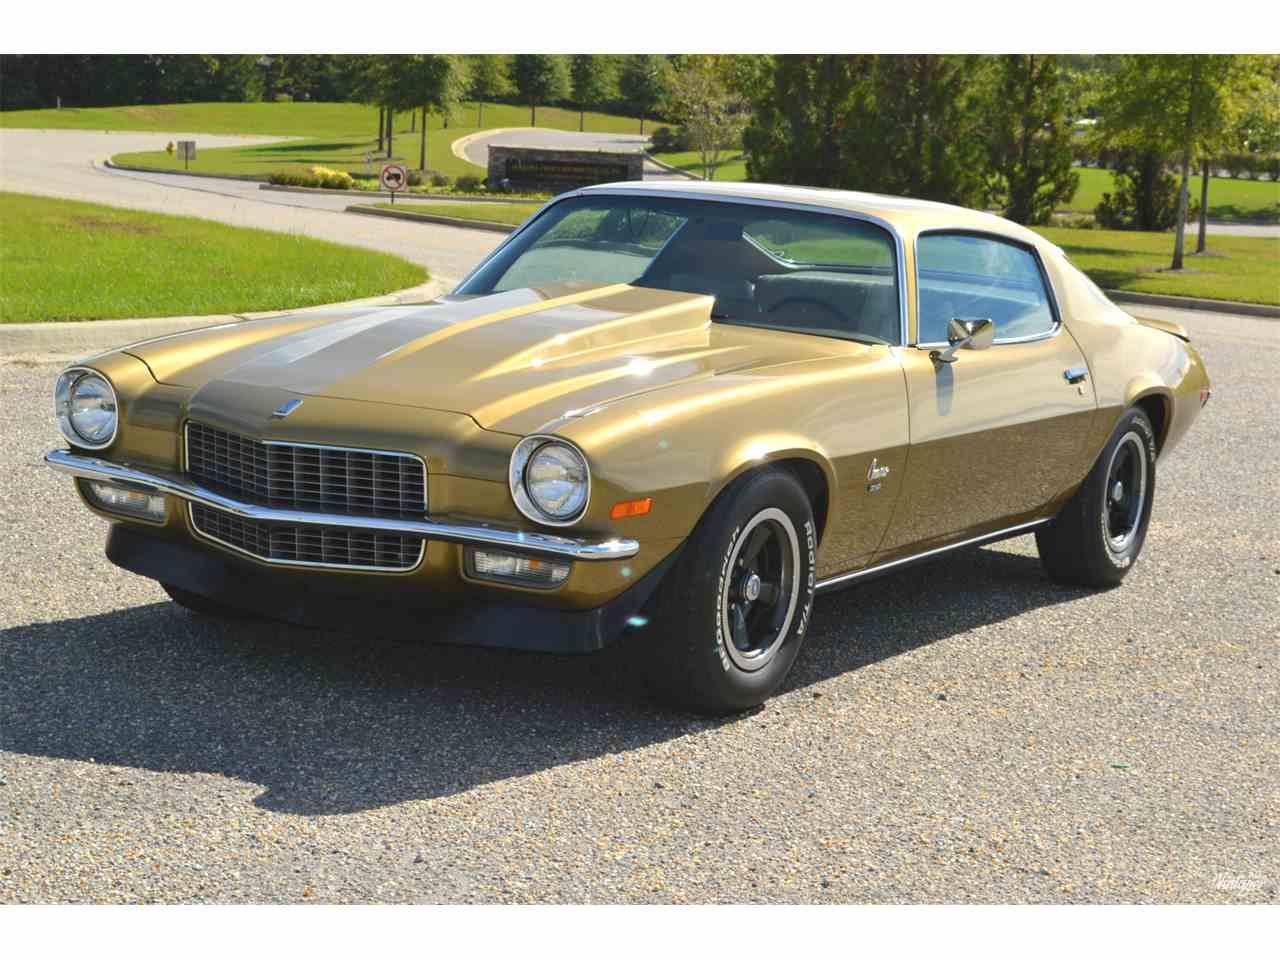 1970 Chevrolet Camaro for Sale on ClassicCars.com - 45 Available